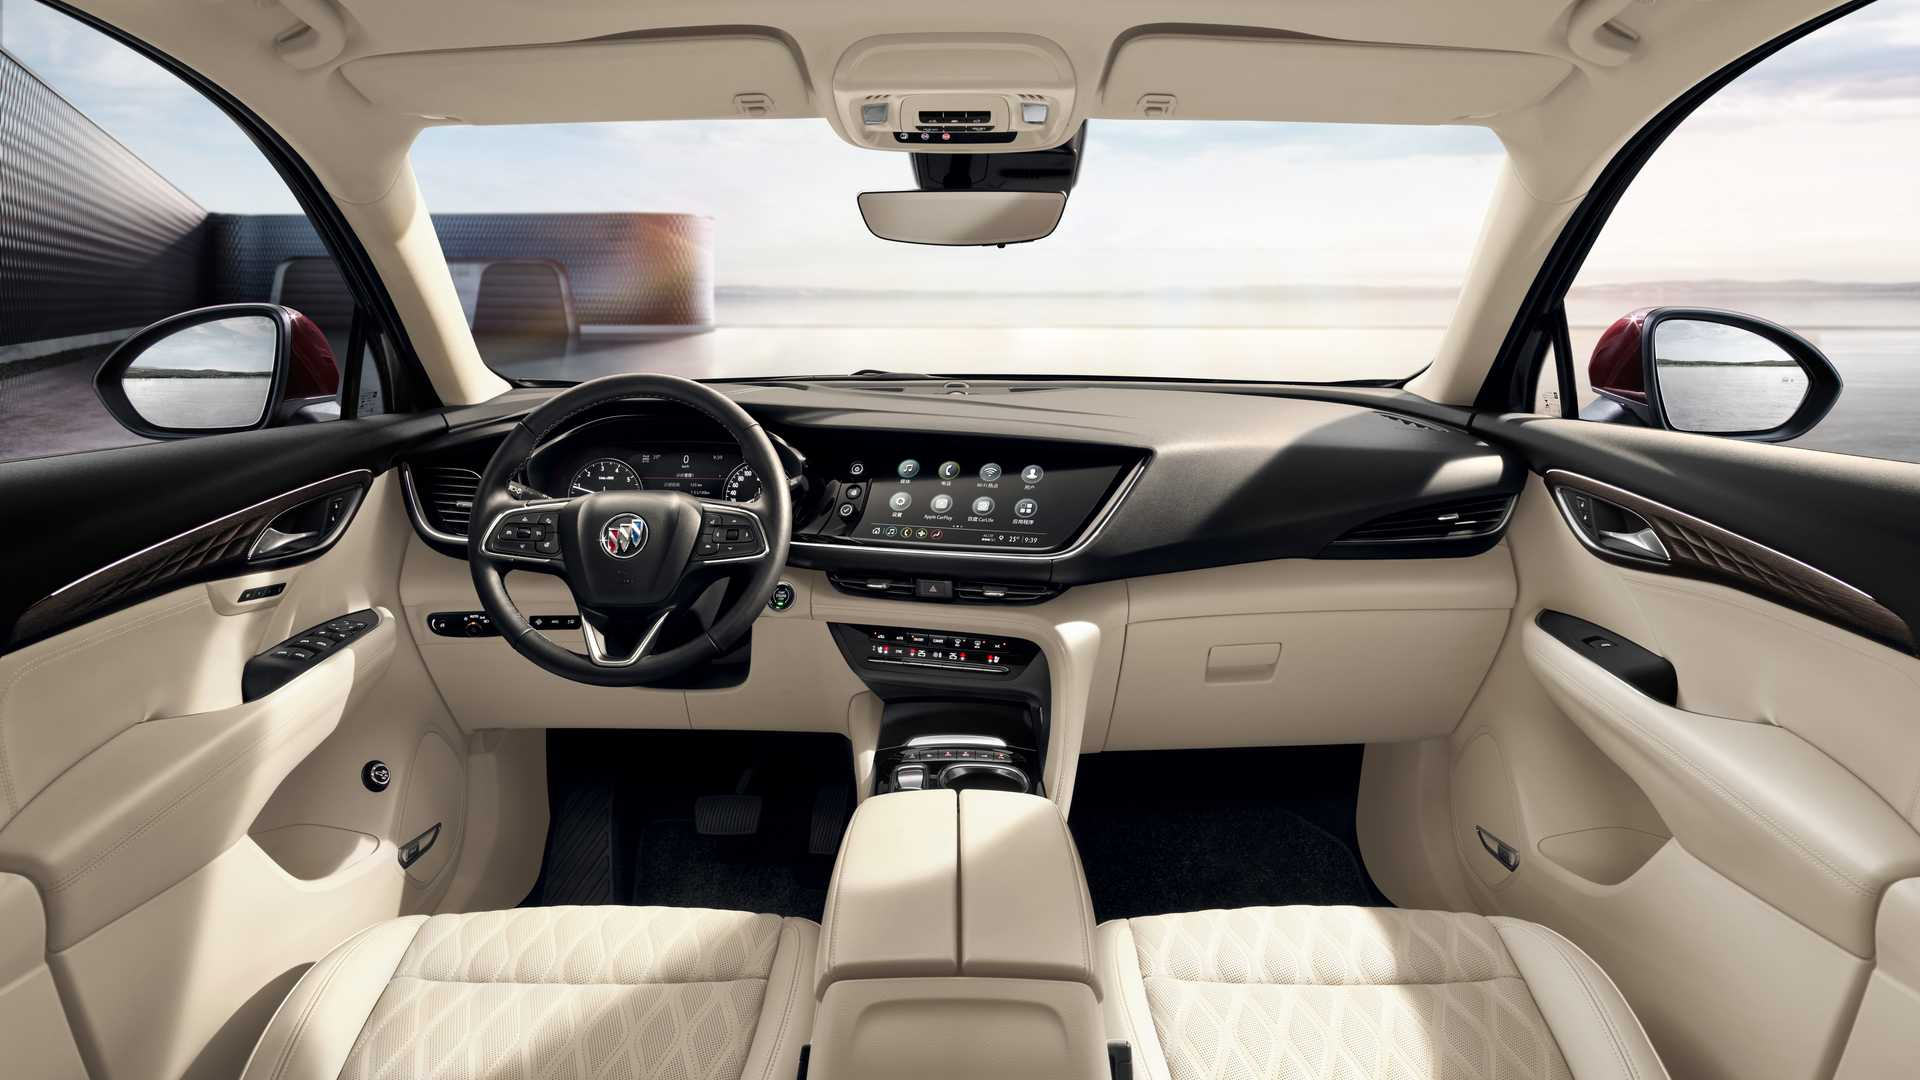 2021 Buick Envision Reveals Sophisticated Interior In New 2021 Buick Envision Hp, Incentives, Infotainment Manual